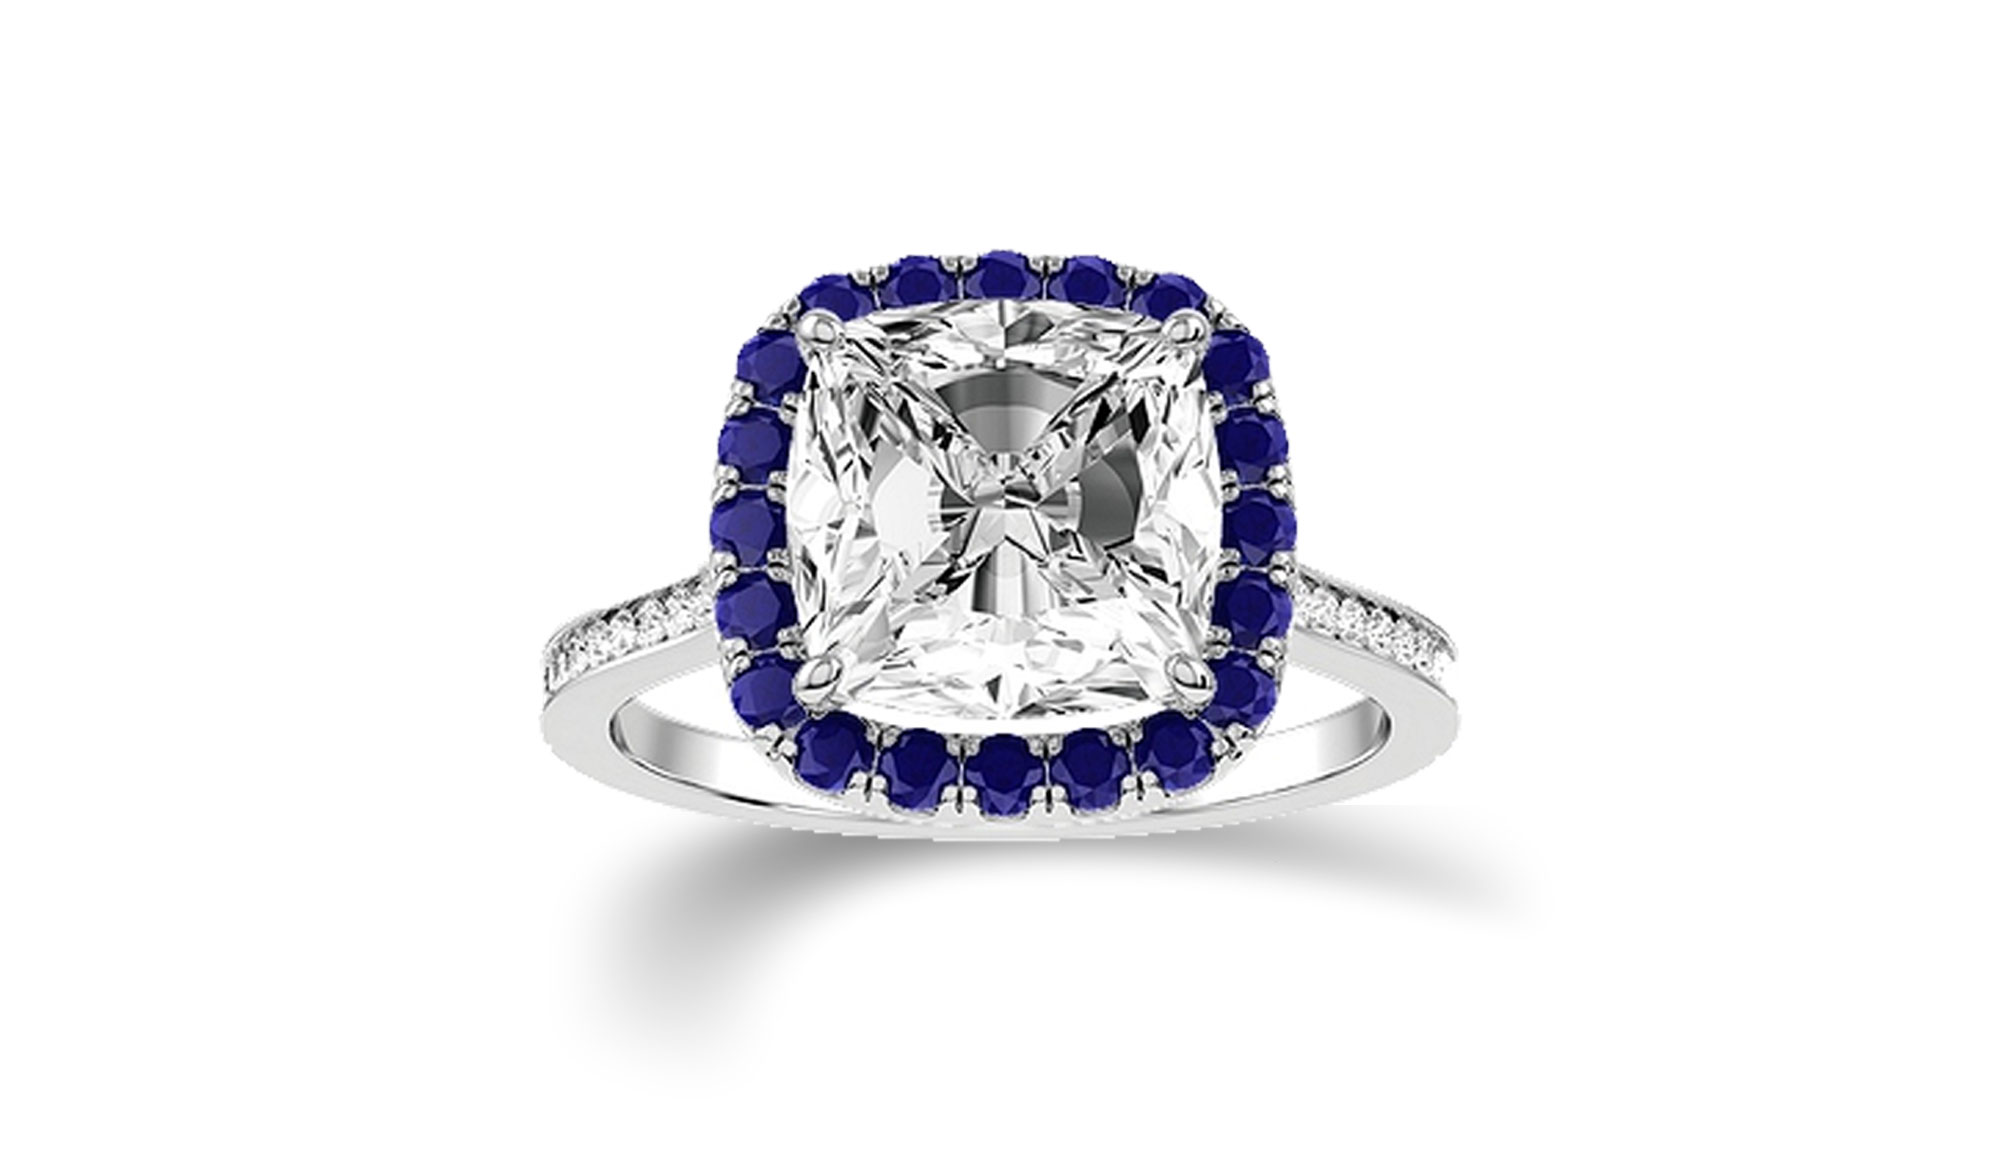 White gold and diamond ring with a blue topaz halo - View Now